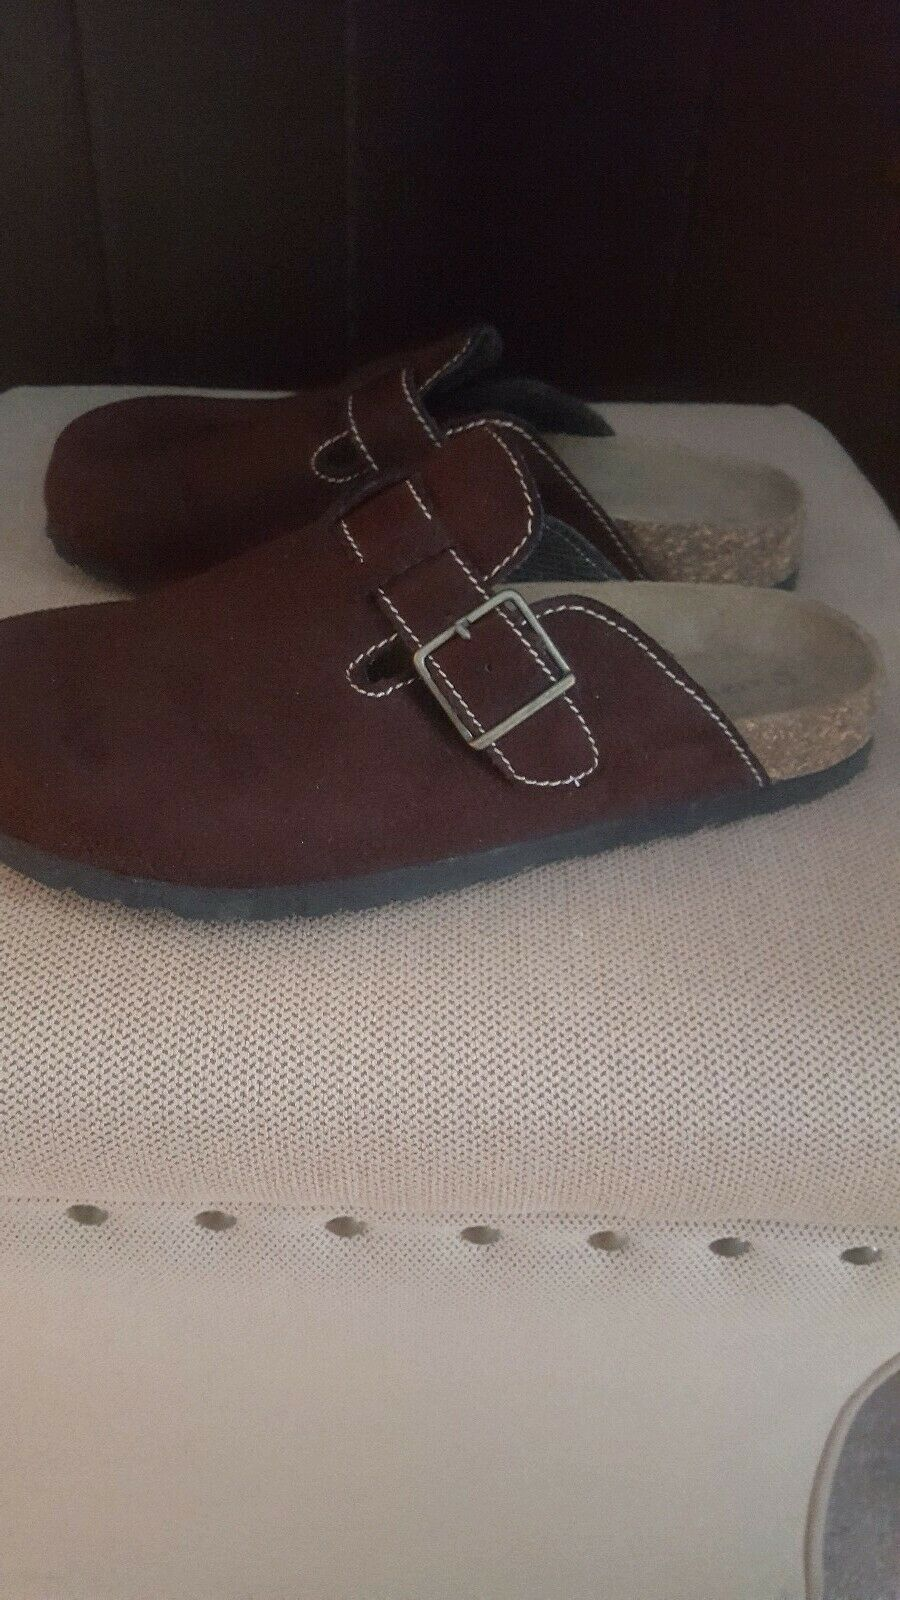 9f22c6eff50a35 Airwalk Women s shoes. Brown. Size 9. nvocbz3751-Athletic Shoes ...